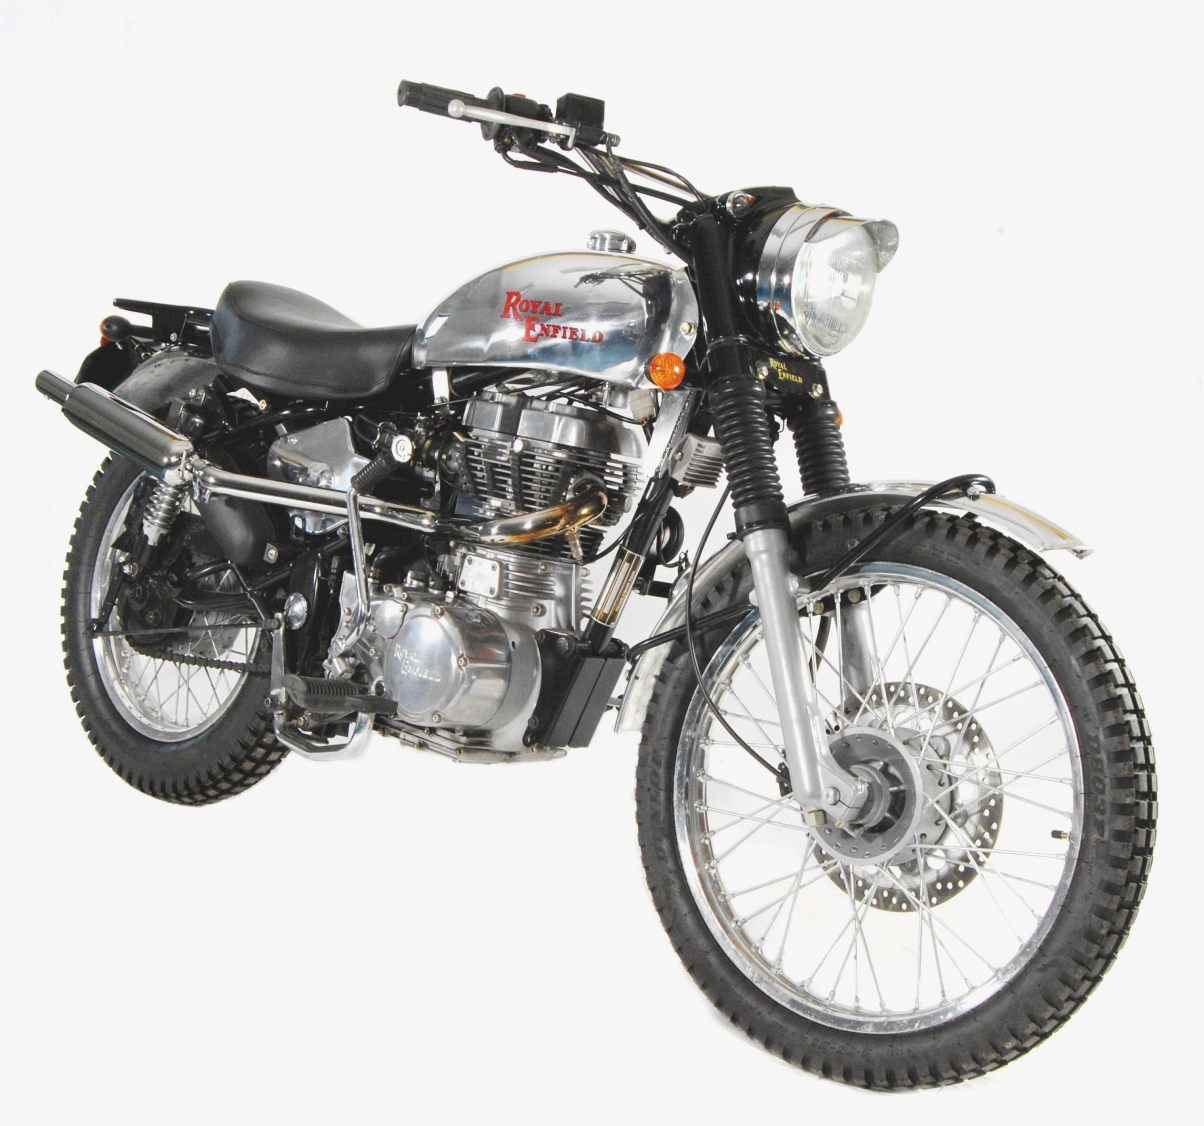 Royal Enfield Bullet 500 Trial Trail 2001 images #122960